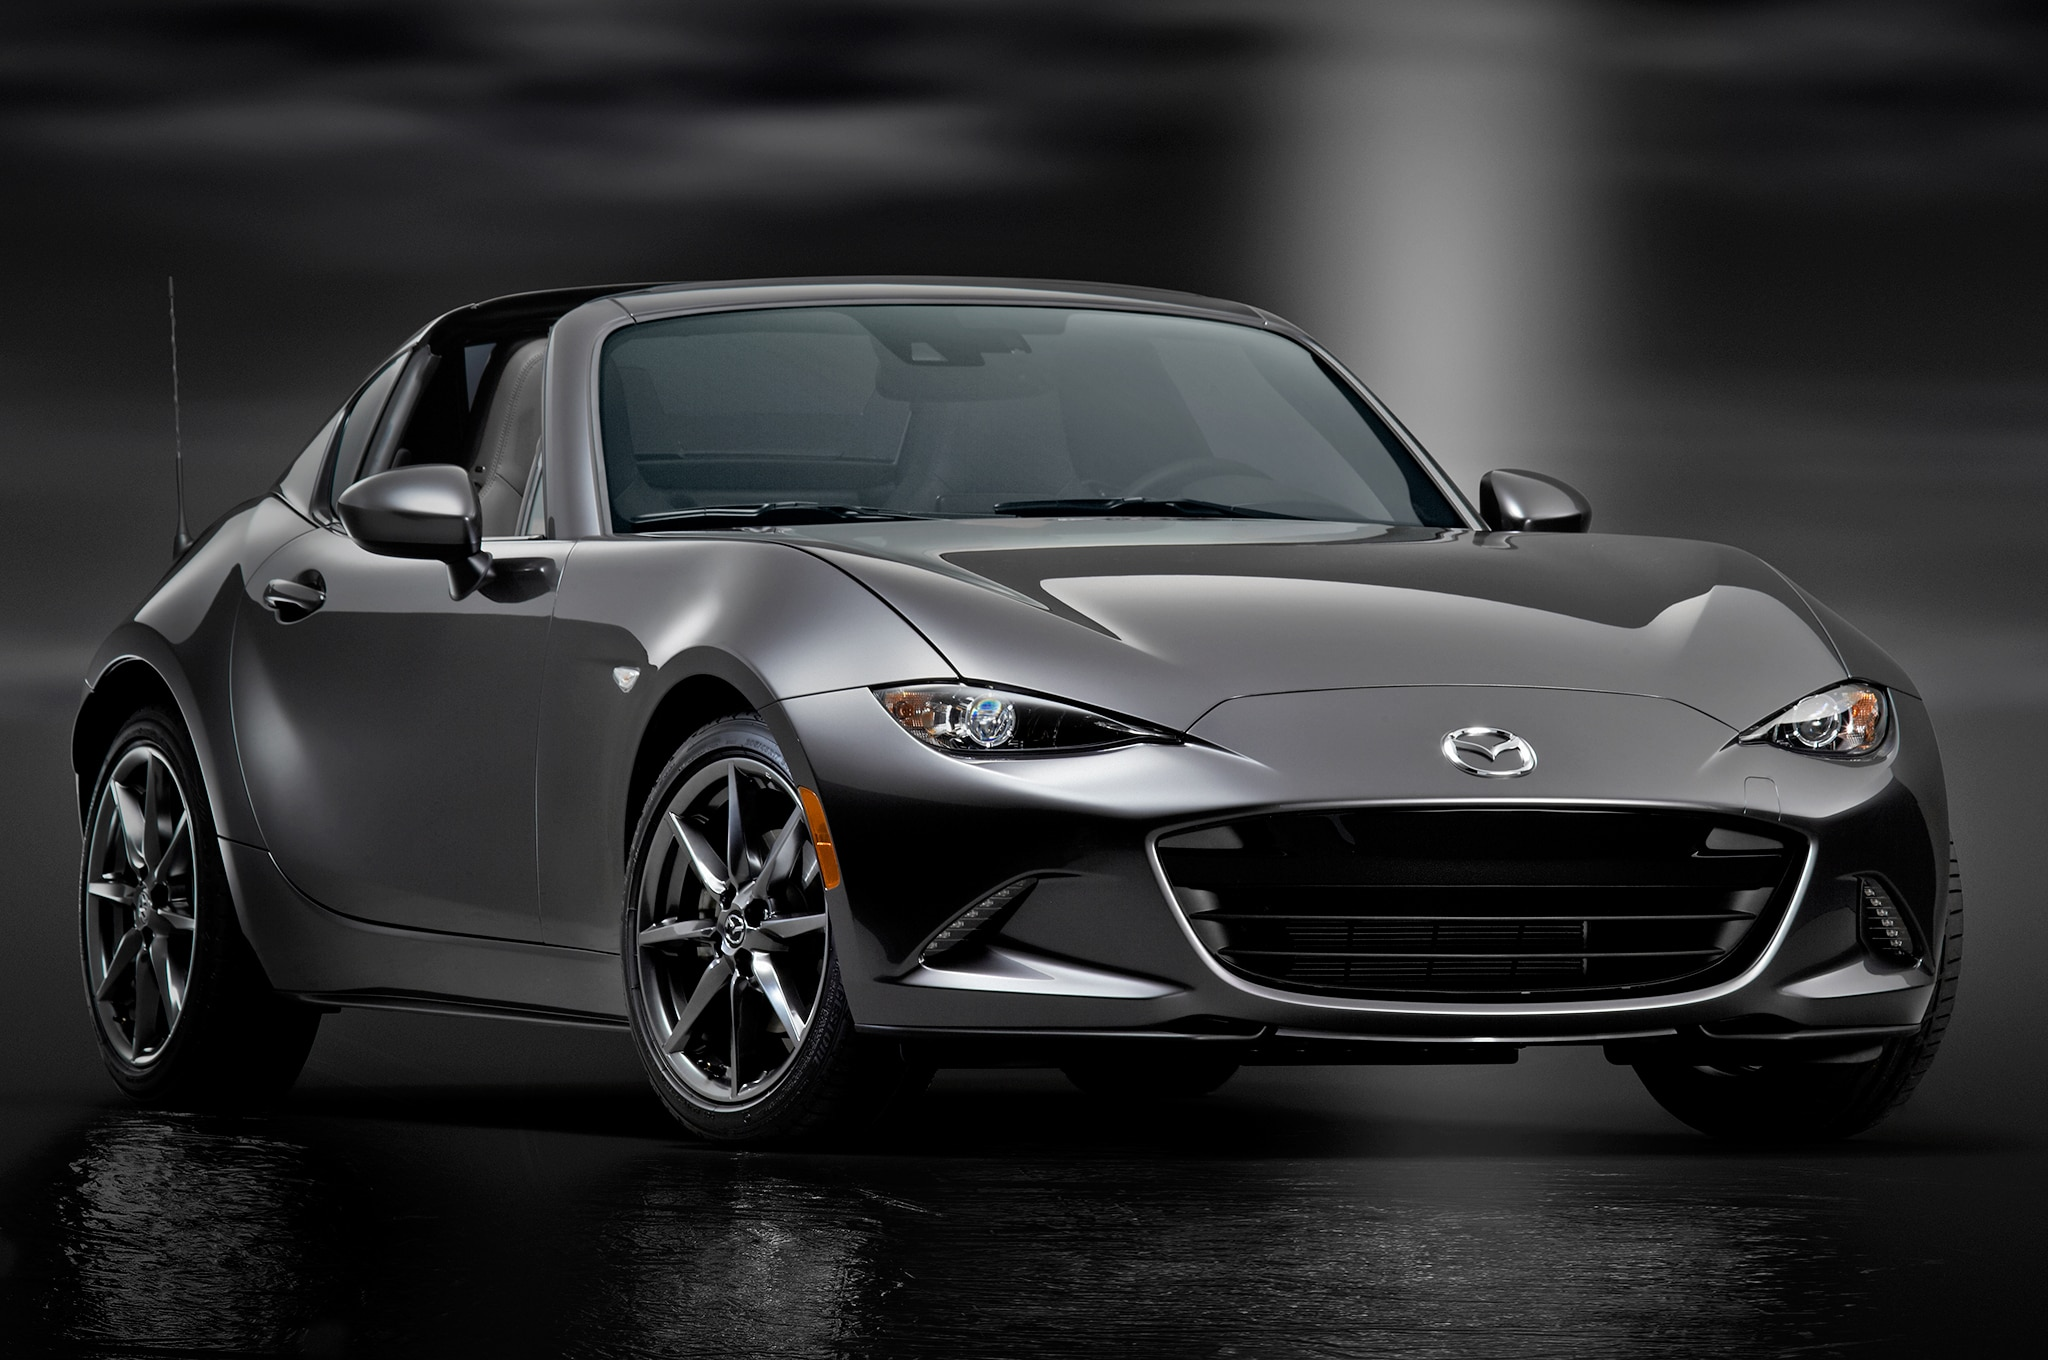 mazda mx rf miata edition limited know things revealed roadster second cars